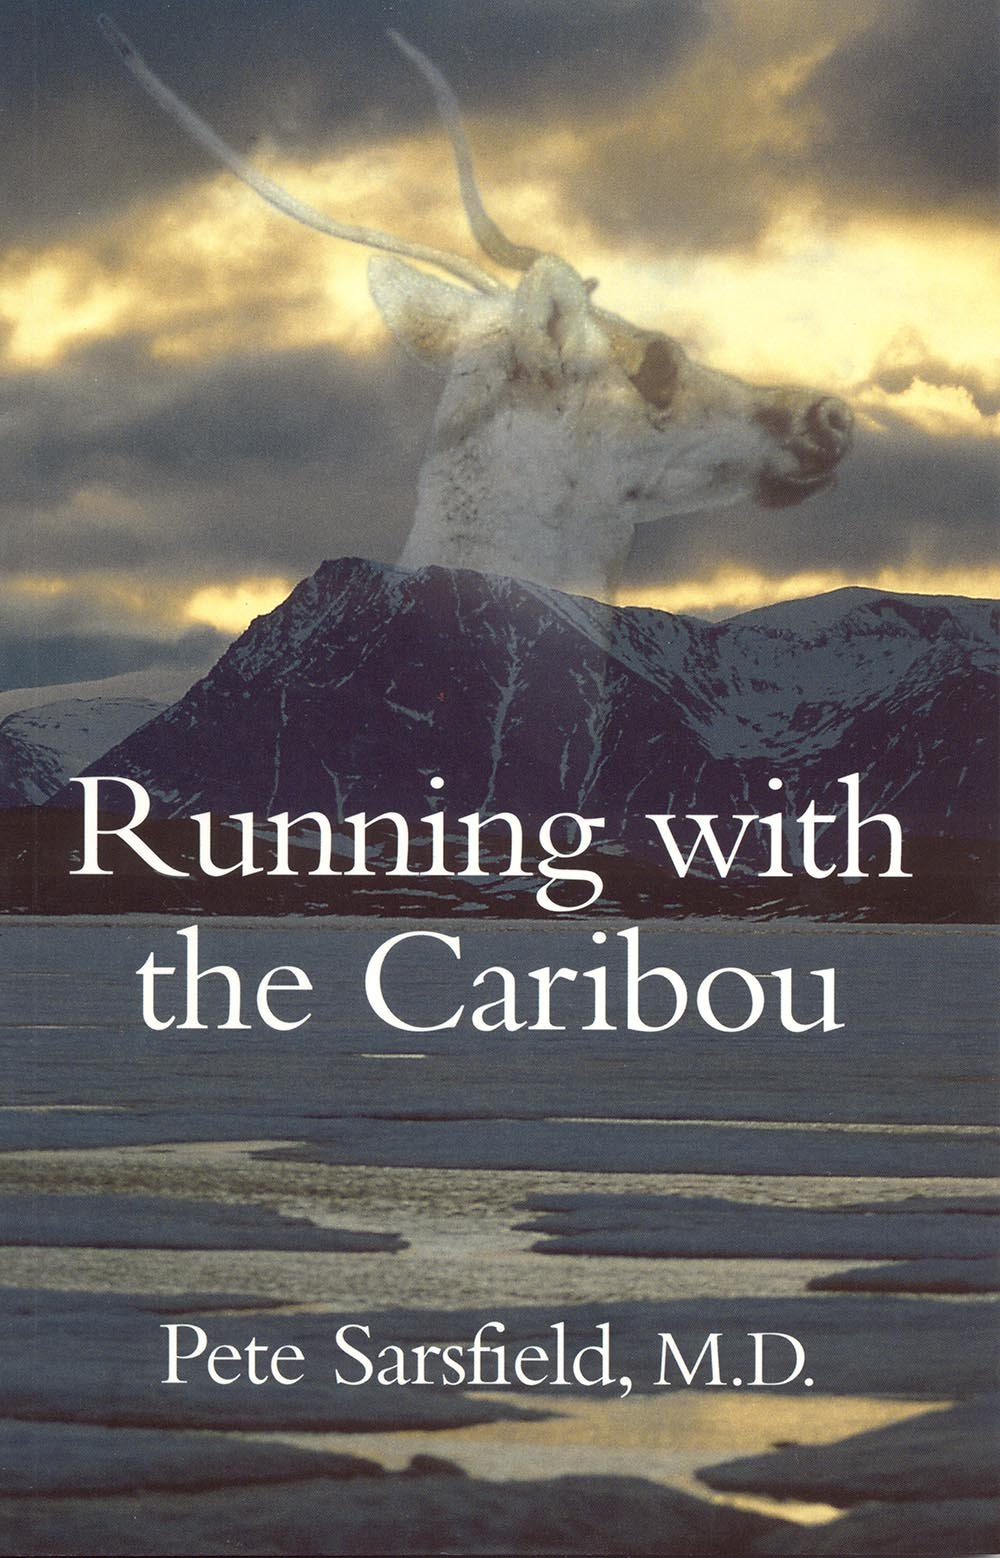 Running with the Caribou by Pete Sarsfield